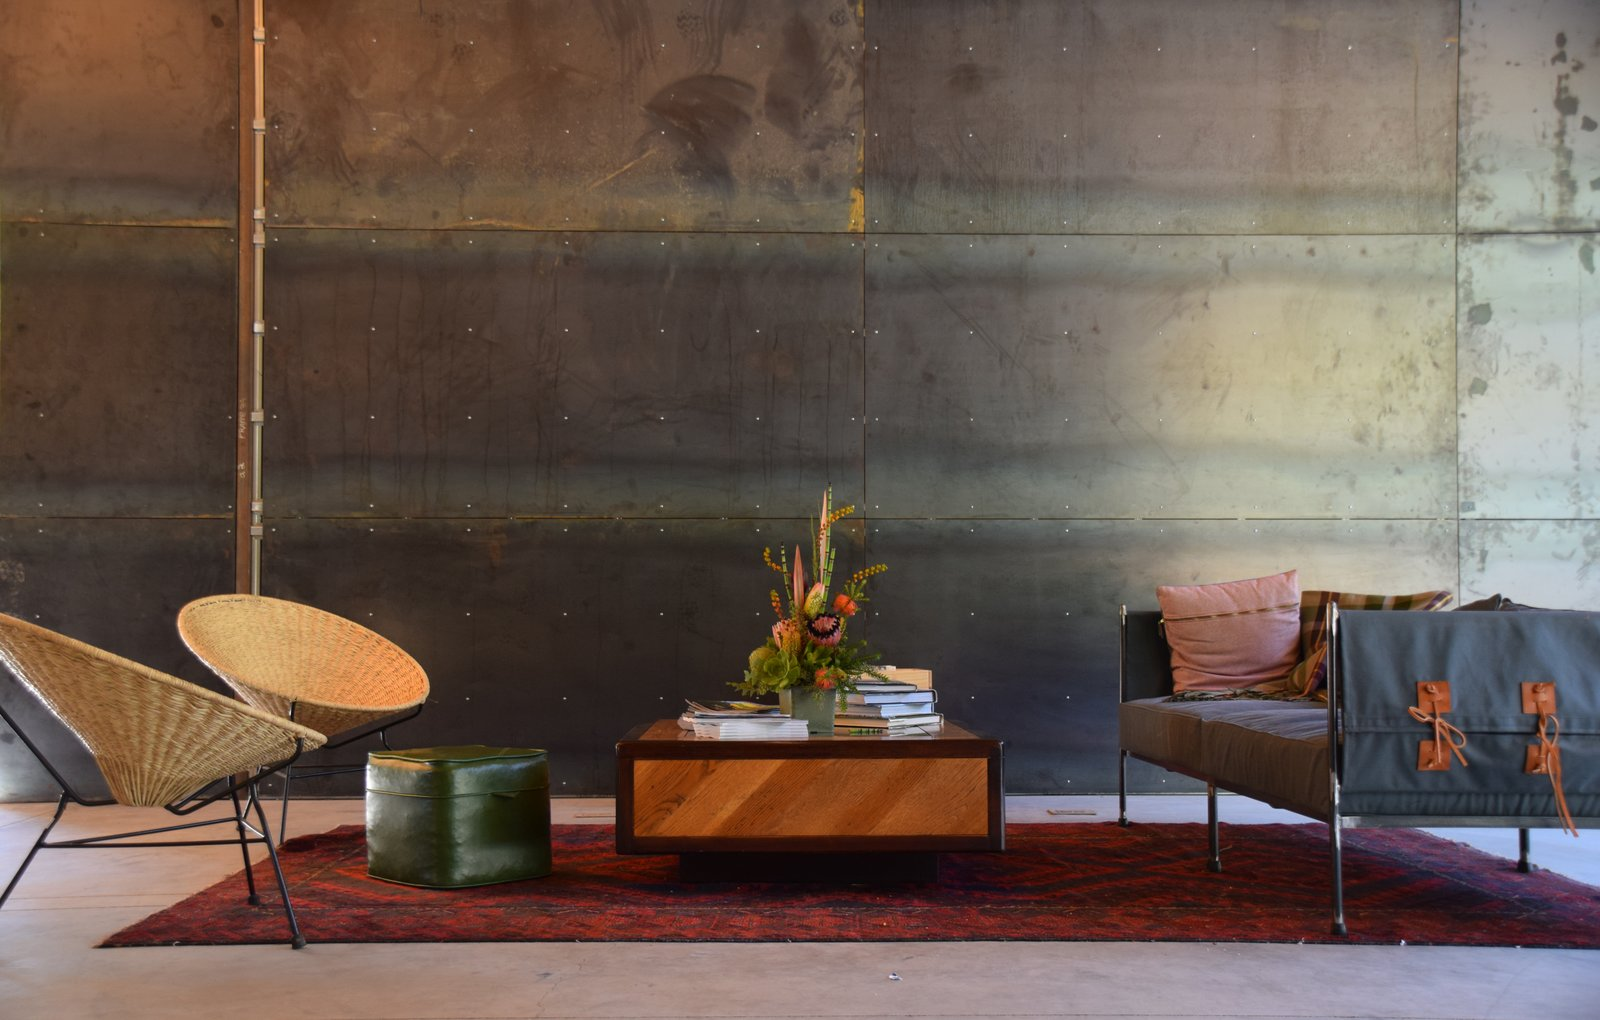 Modern home with Living Room, Coffee Tables, Rug Floor, Chair, Sofa, and Ottomans. Geremia Design created a texturally rich lounge area, its wood, leather, and textile elements softening the steel backdrop. Photo 3 of AutoCamp Russian River